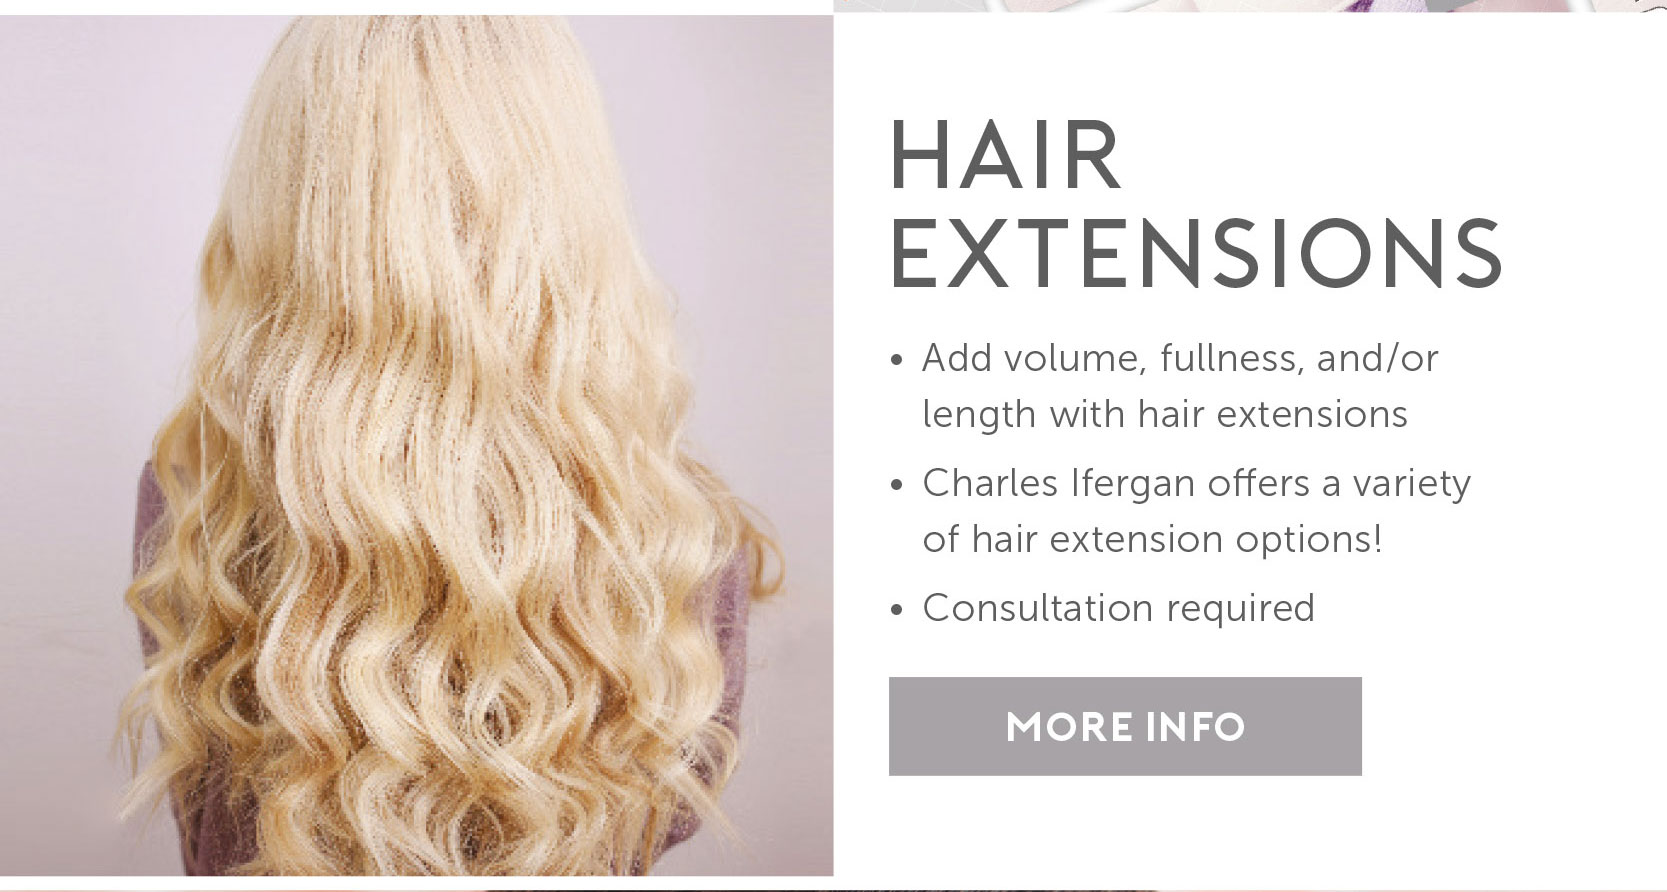 Hair Extensions – Add volume, fullness, & length | We offer a variety of options! | Consultation required